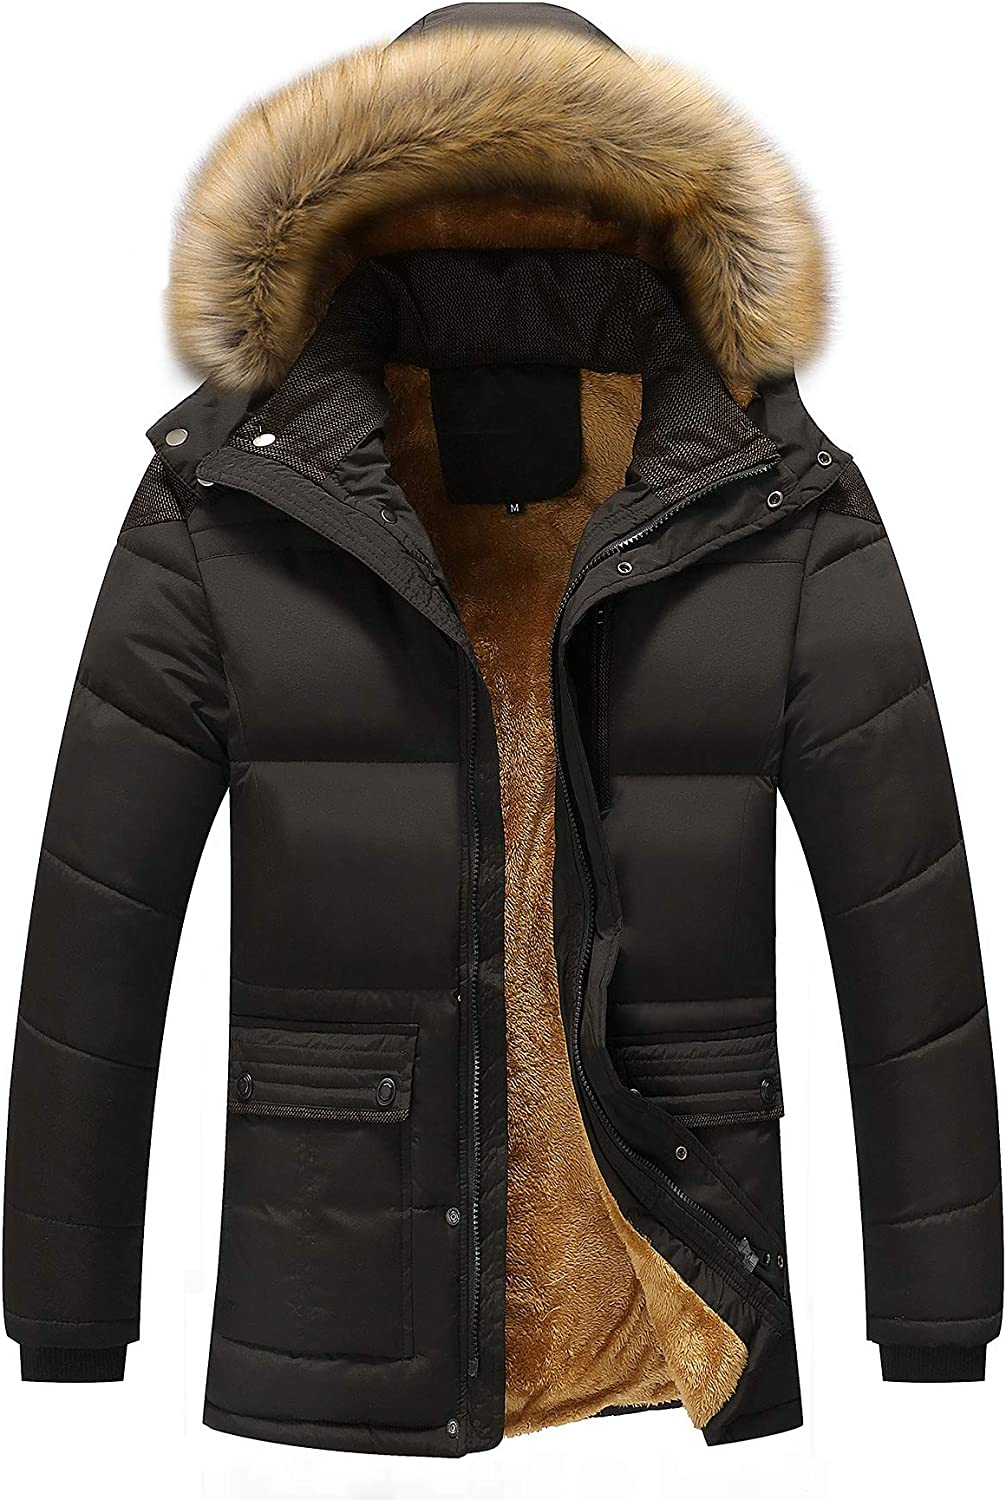 Gihuo Men's Padded Puffer Jacket Fleece Lined Hooded Parka with Faux Fur Trim